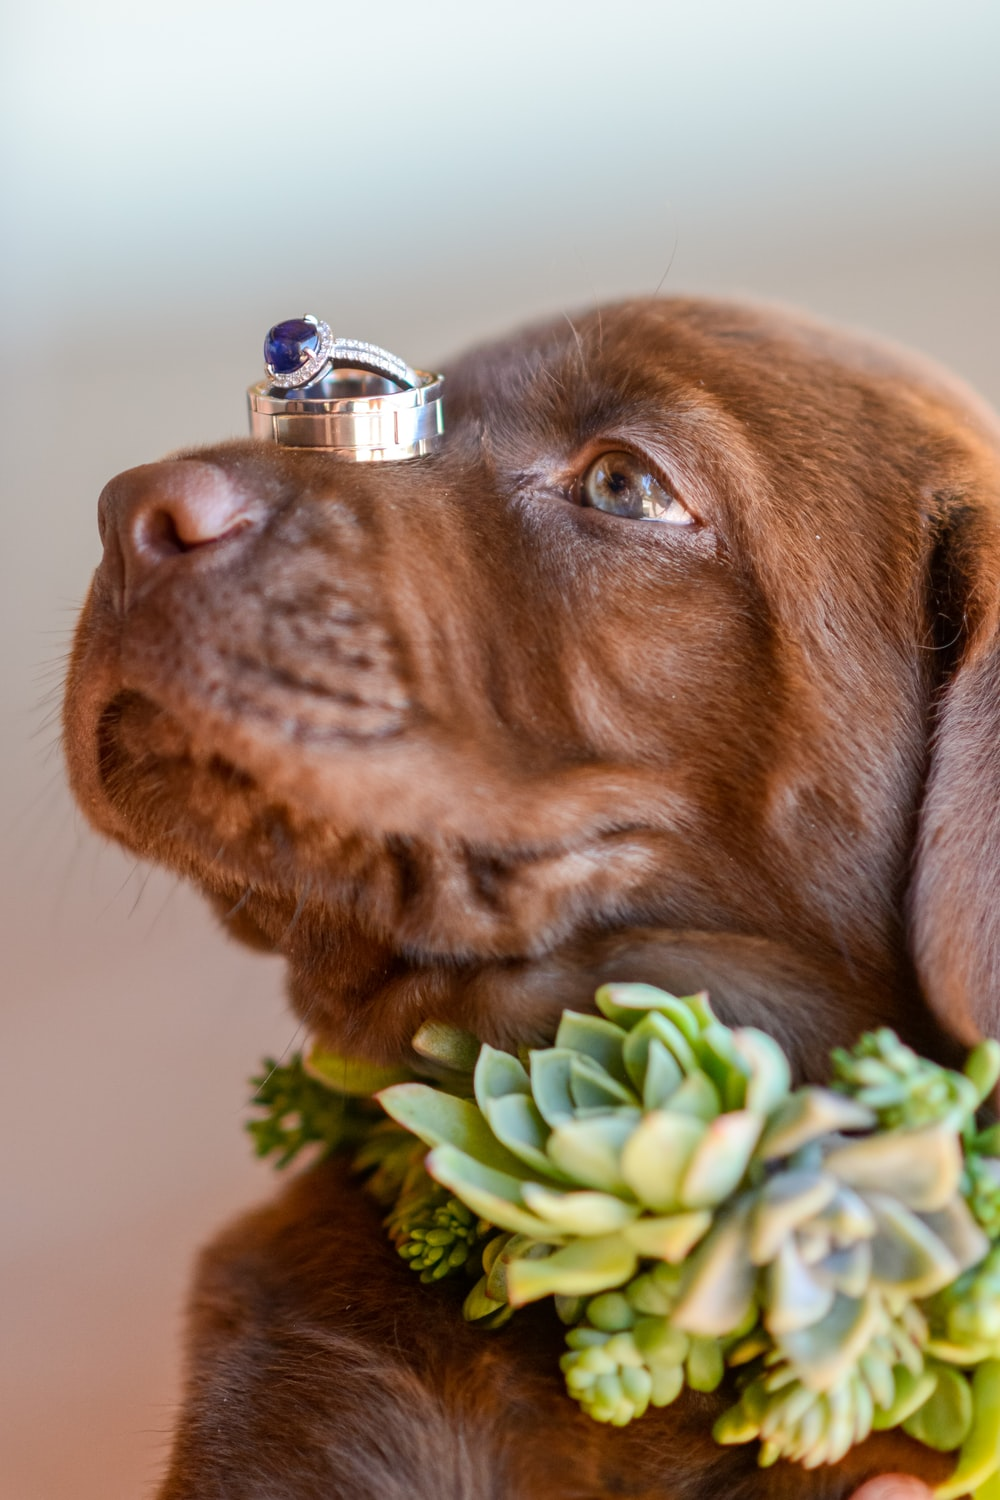 brown short coated dog with silver bell on mouth